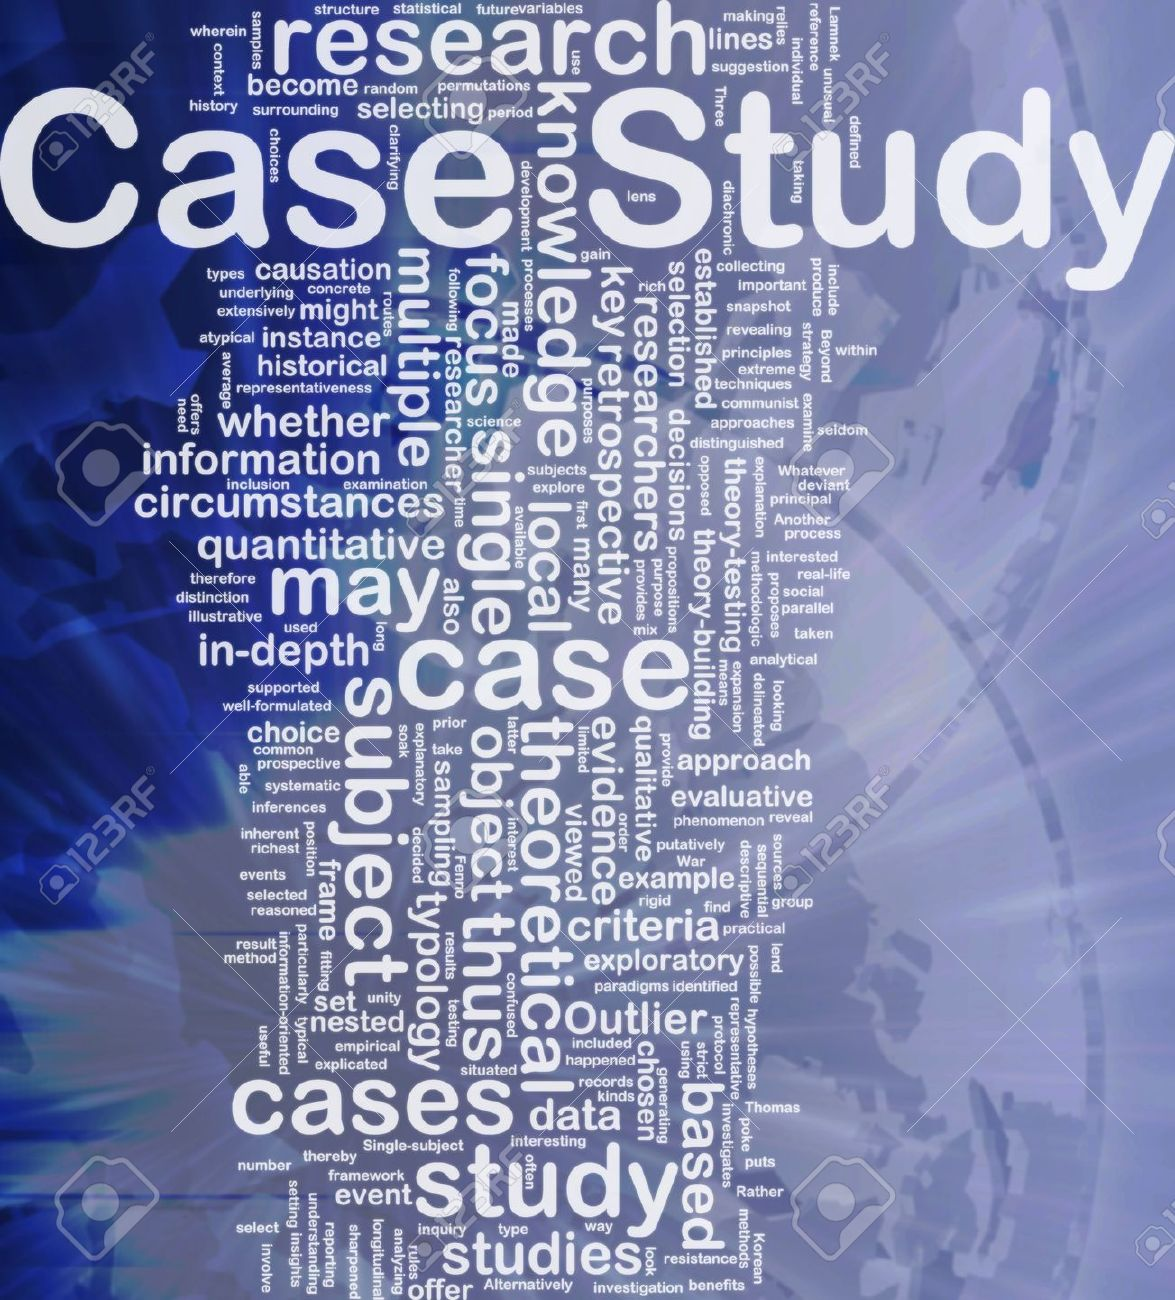 Case history clipart graphic transparent download Case Studies Clip Art – Clipart Free Download graphic transparent download